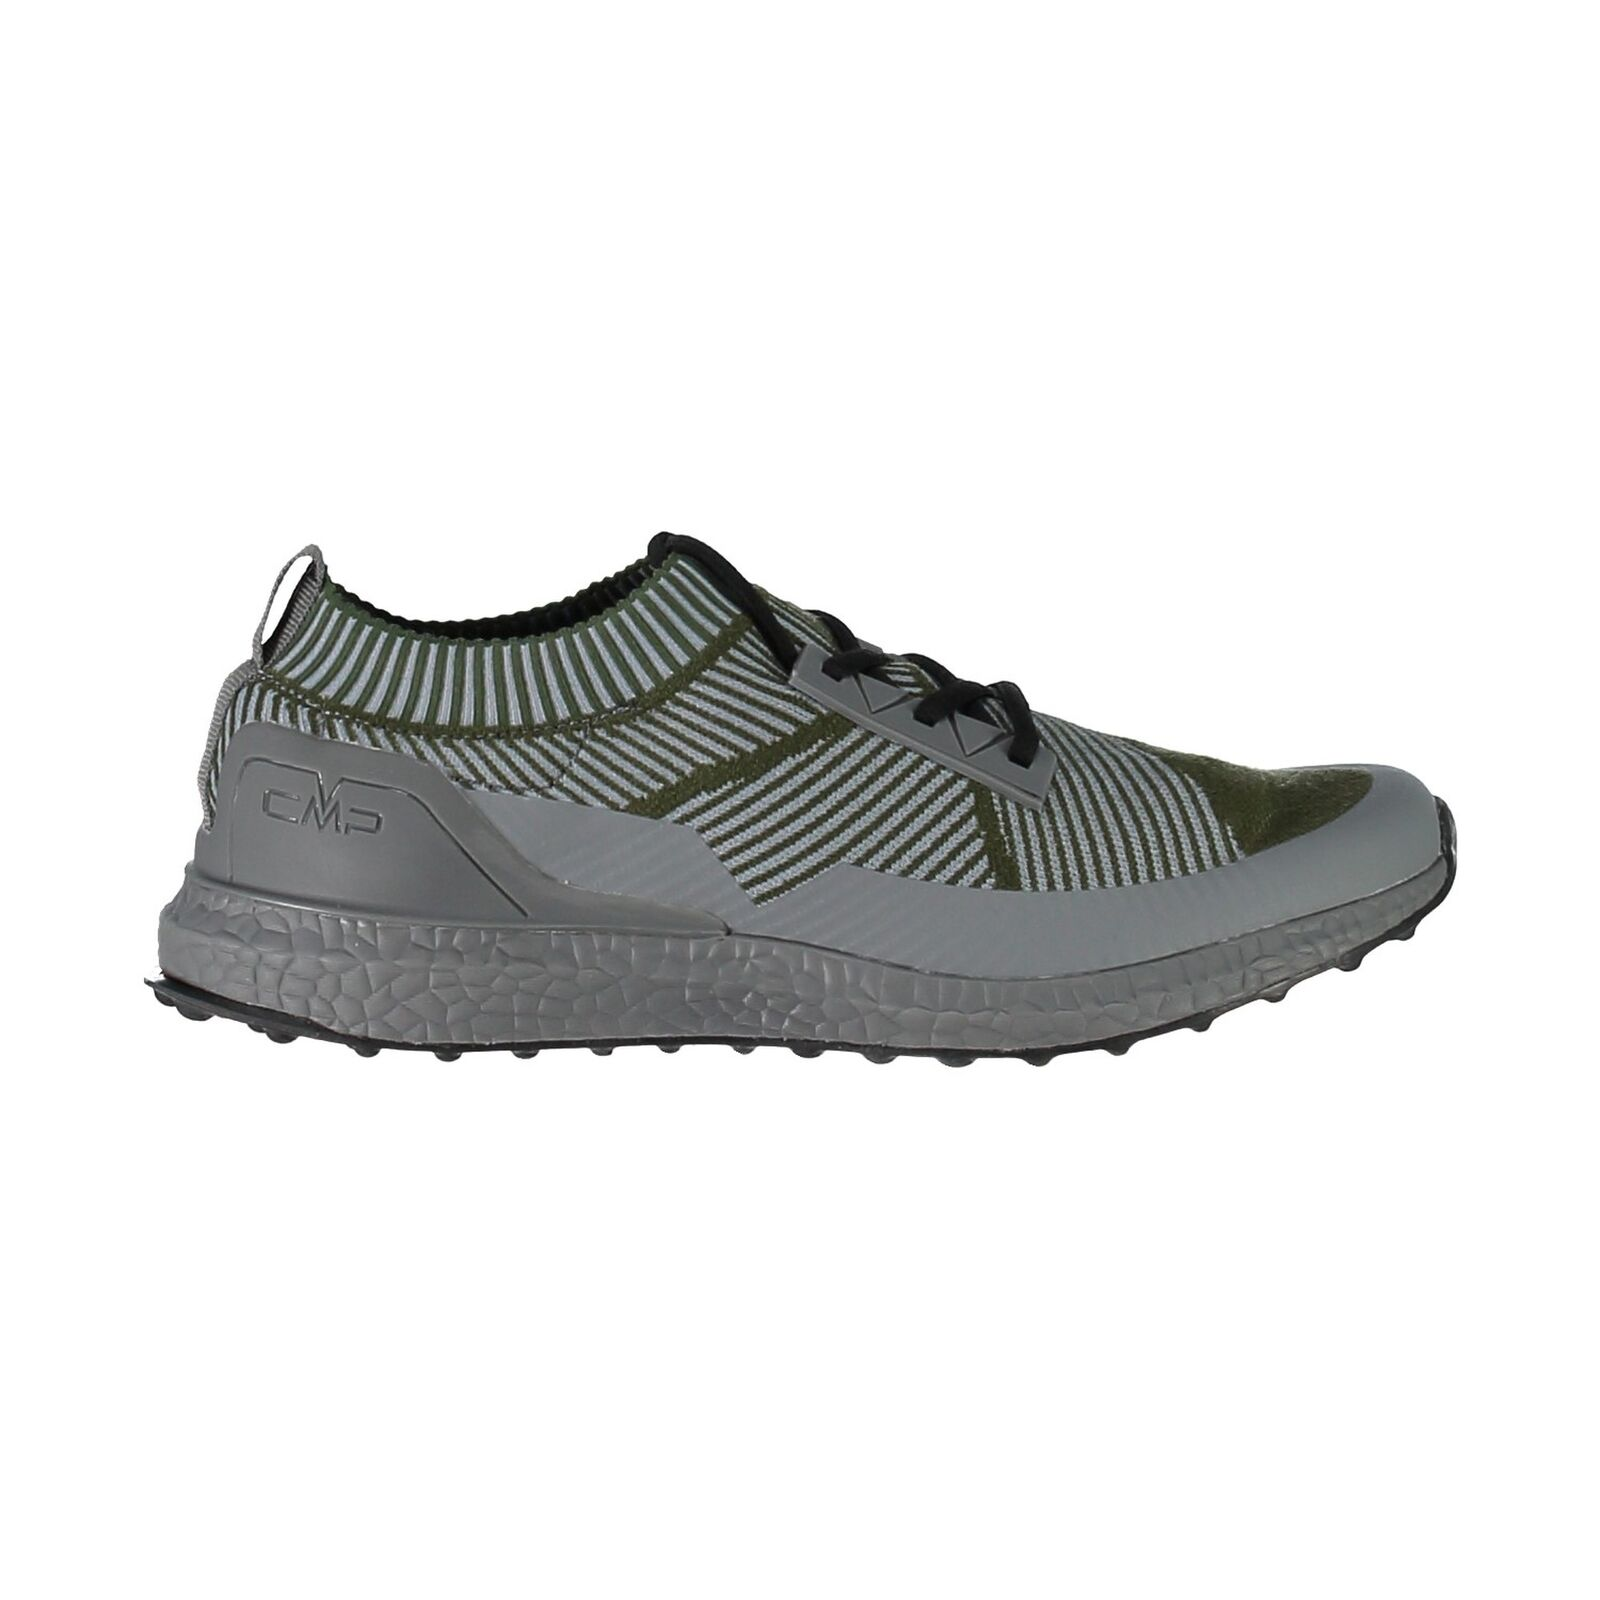 CMP Trainers Sport shoes Nembus Wool Lifestyle shoes Green  Striped  free delivery and returns